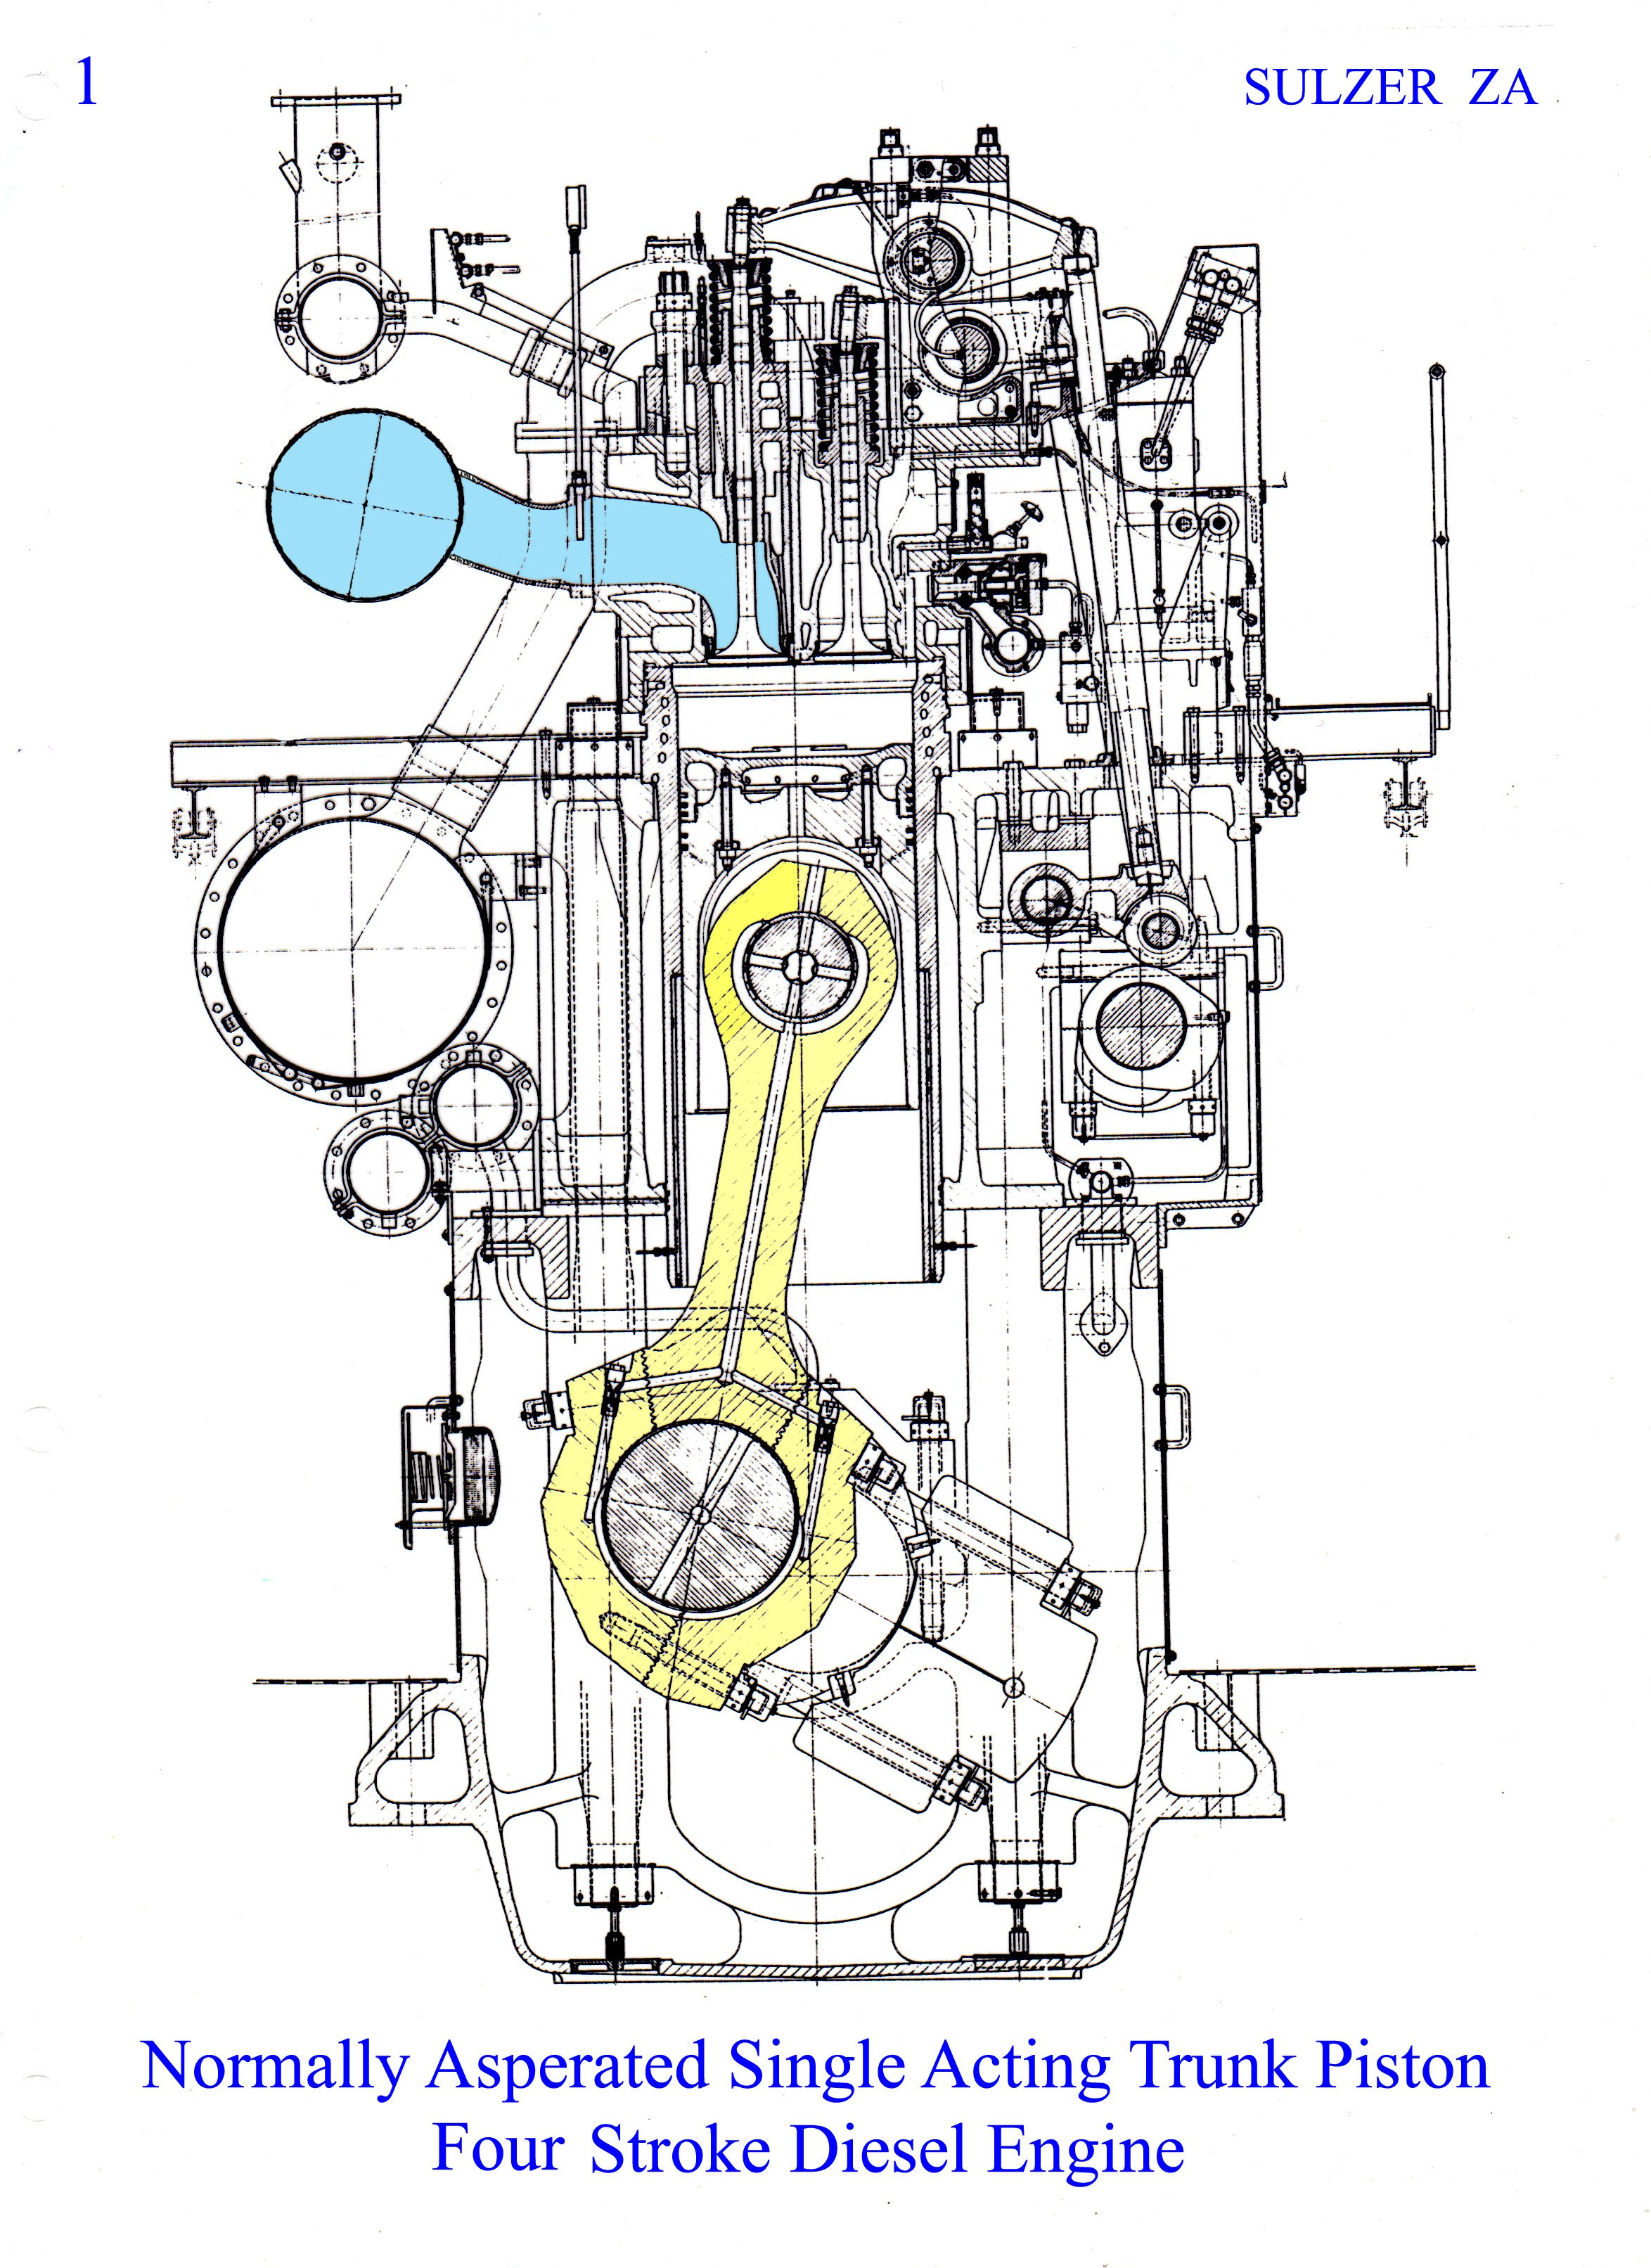 sulzer engine diagram wiring diagram two cylinder wiring diagram murray two and two switches wiring diagram for lights #2